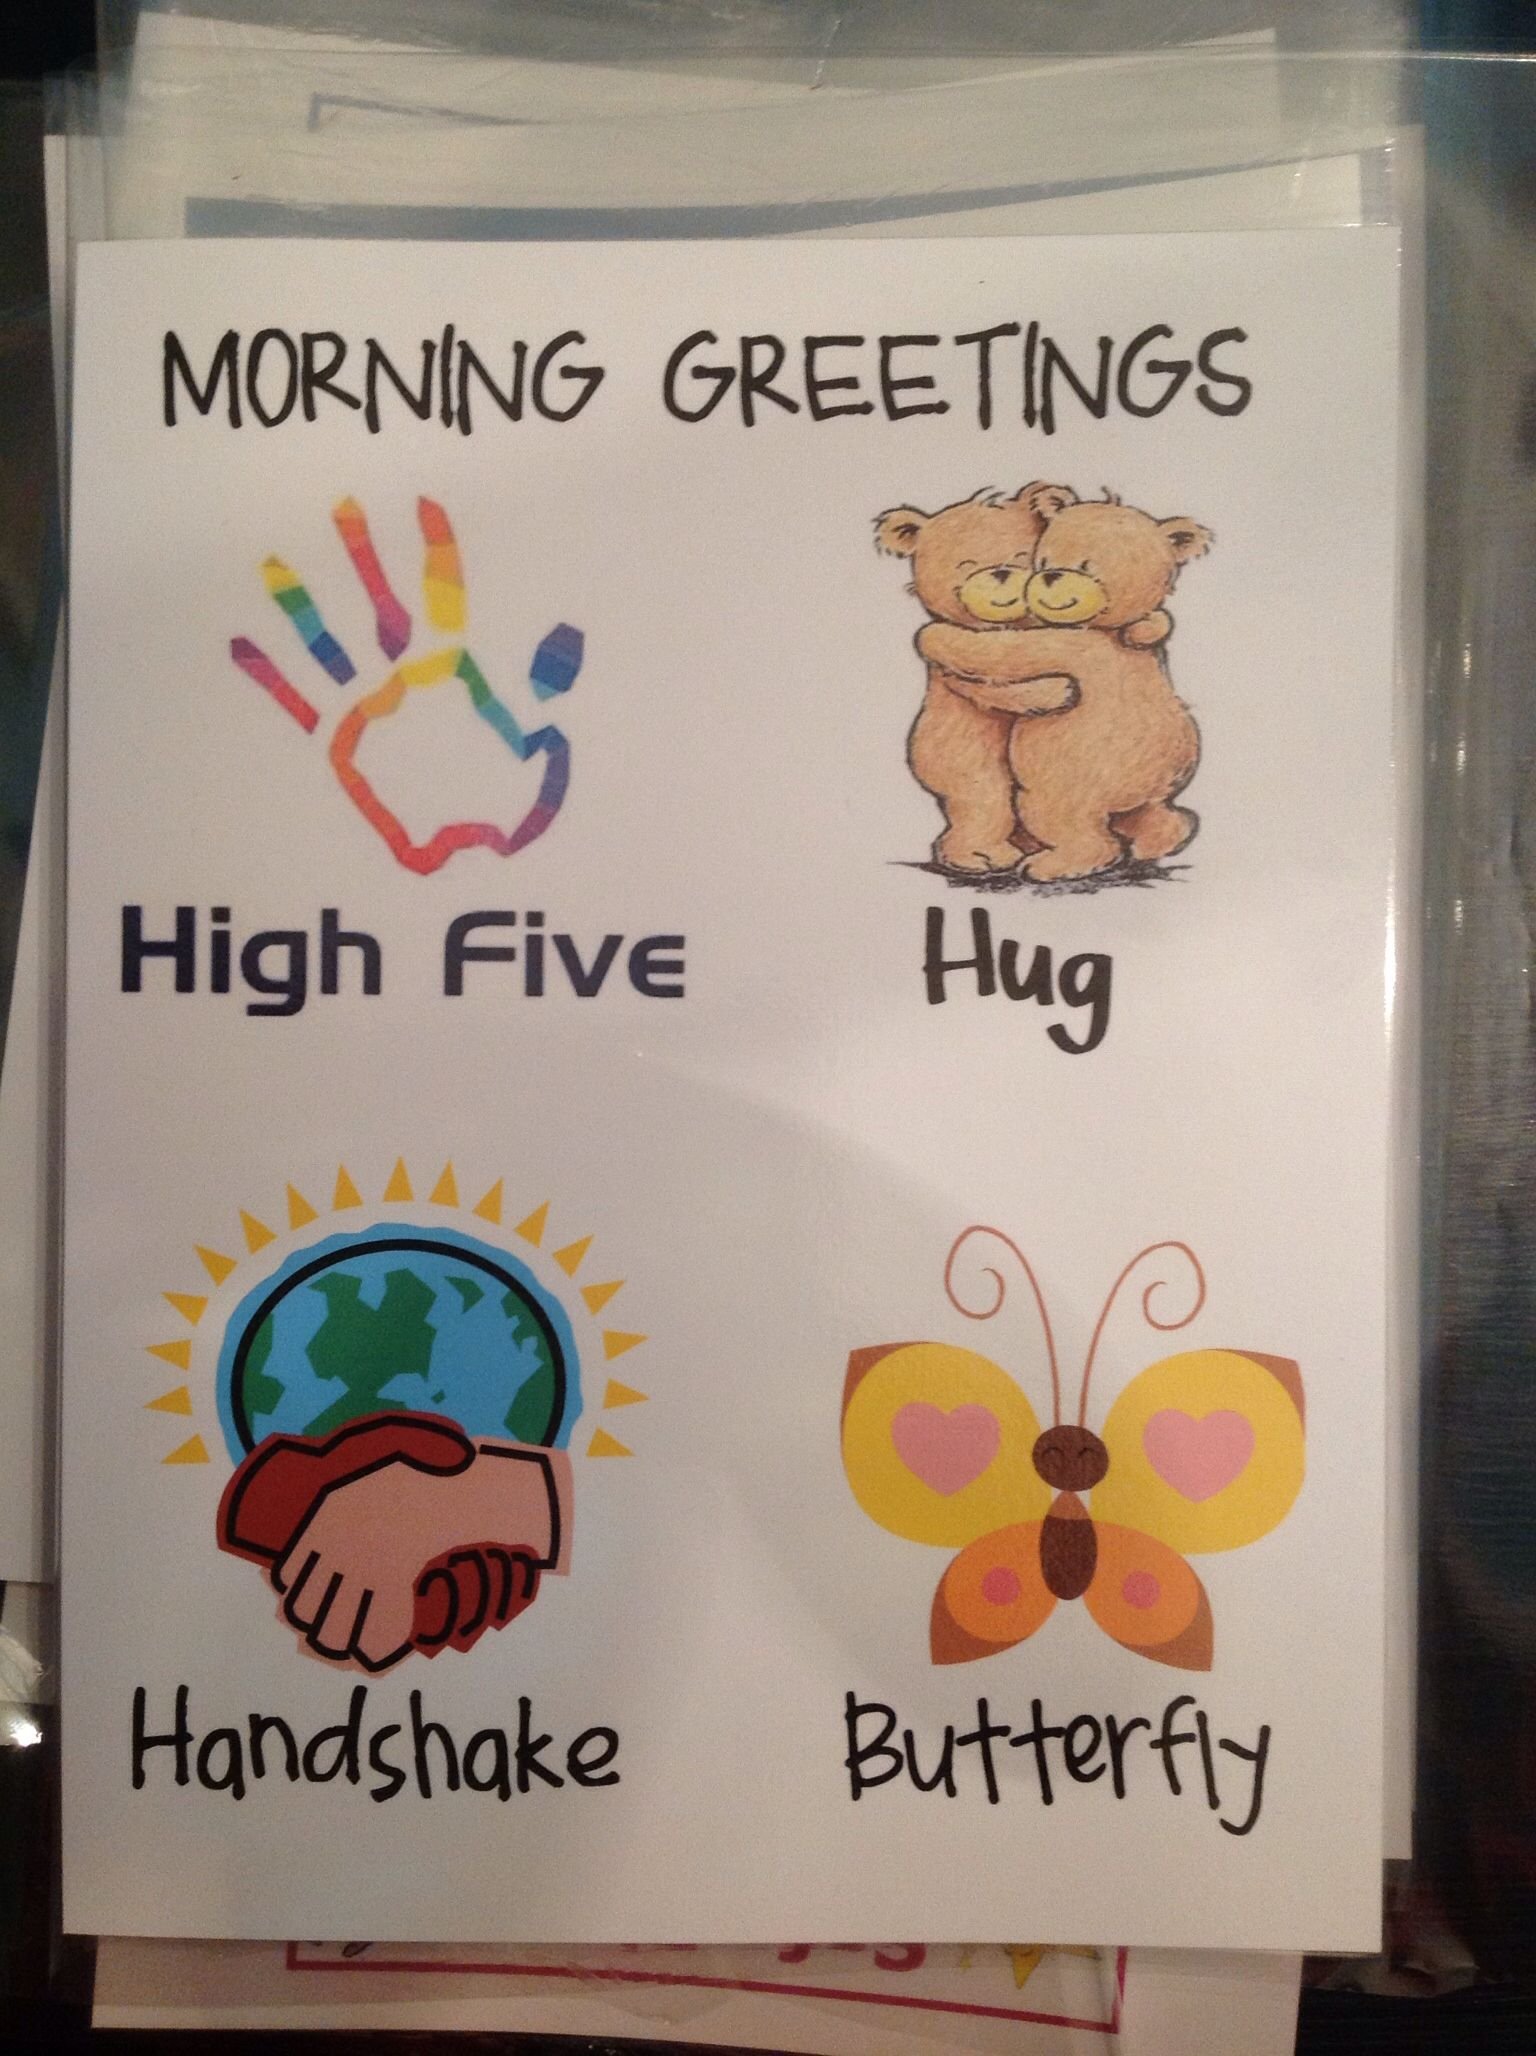 Classroom Greeting Ideas ~ Morning greetings have students choose one from the card